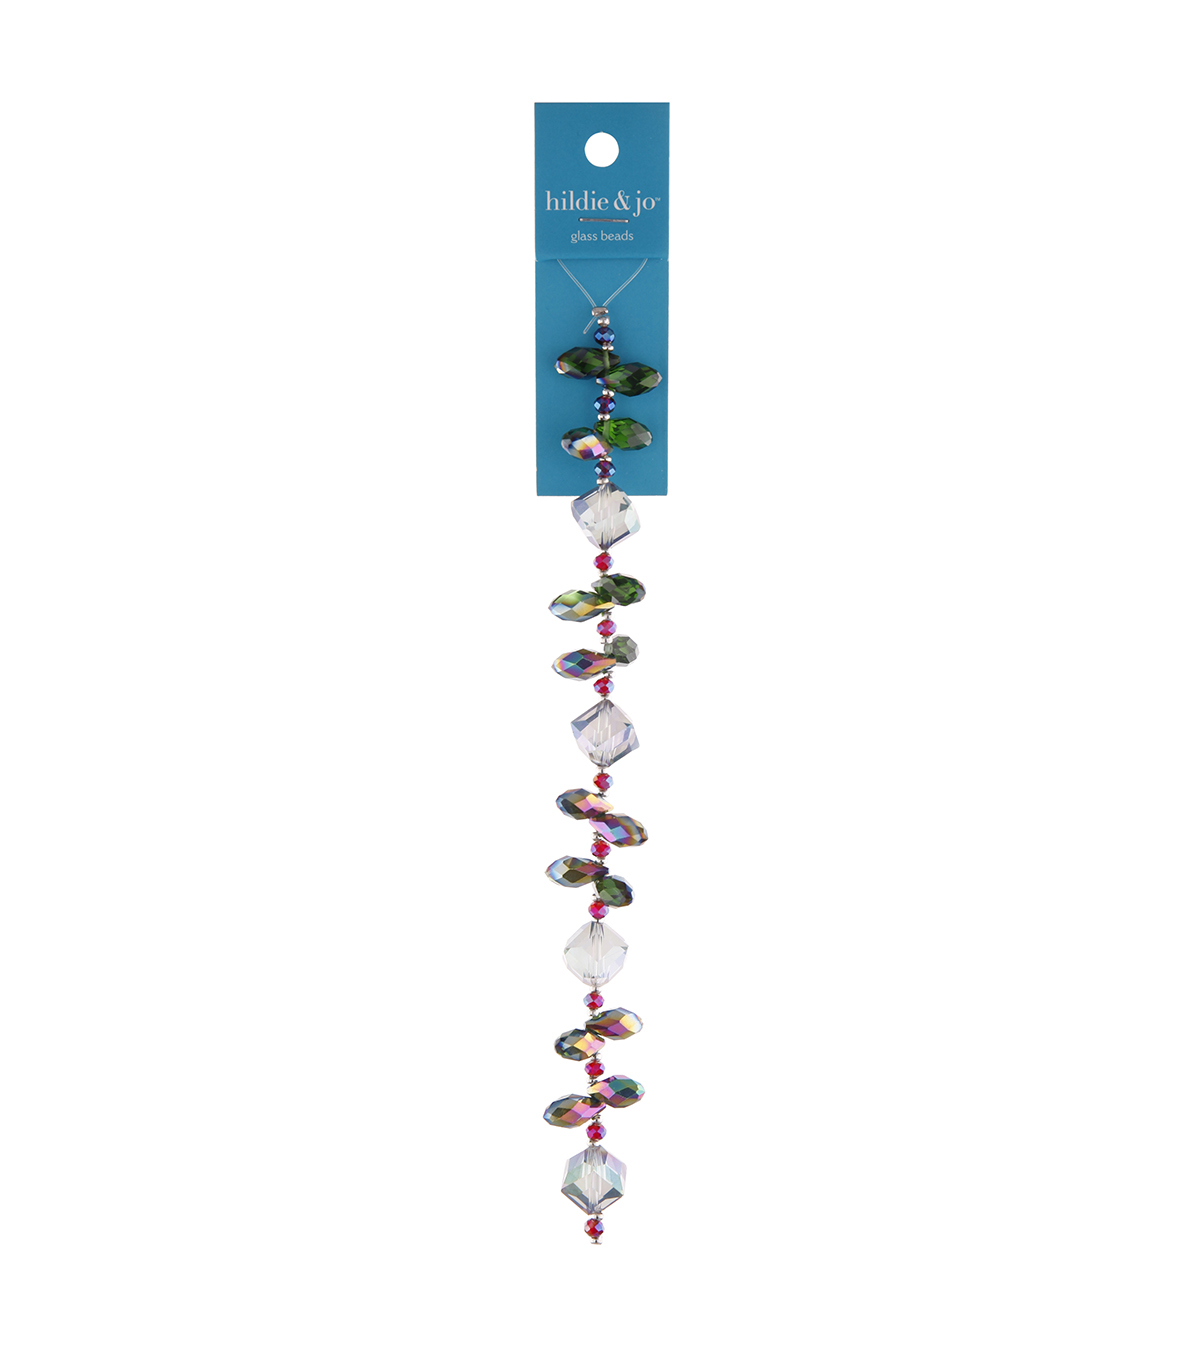 hildie & jo 6.7\u0027\u0027 Drop Glass Strung Beads